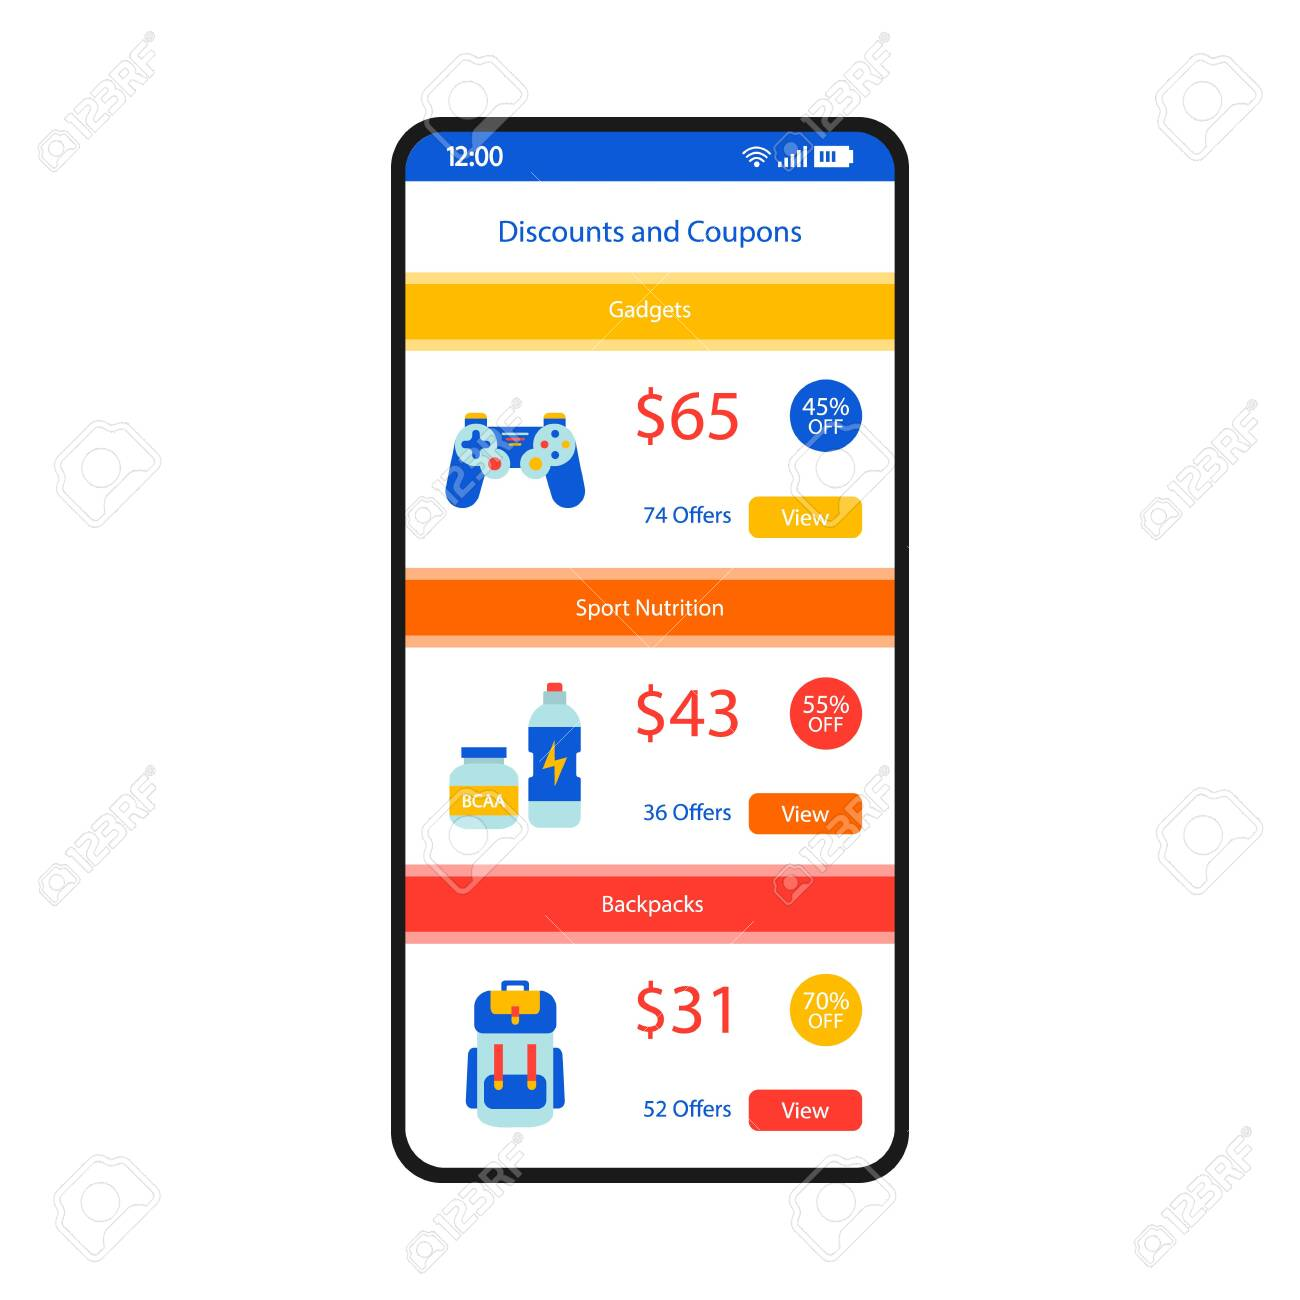 Discounts and coupons smartphone interface vector template  Mobile